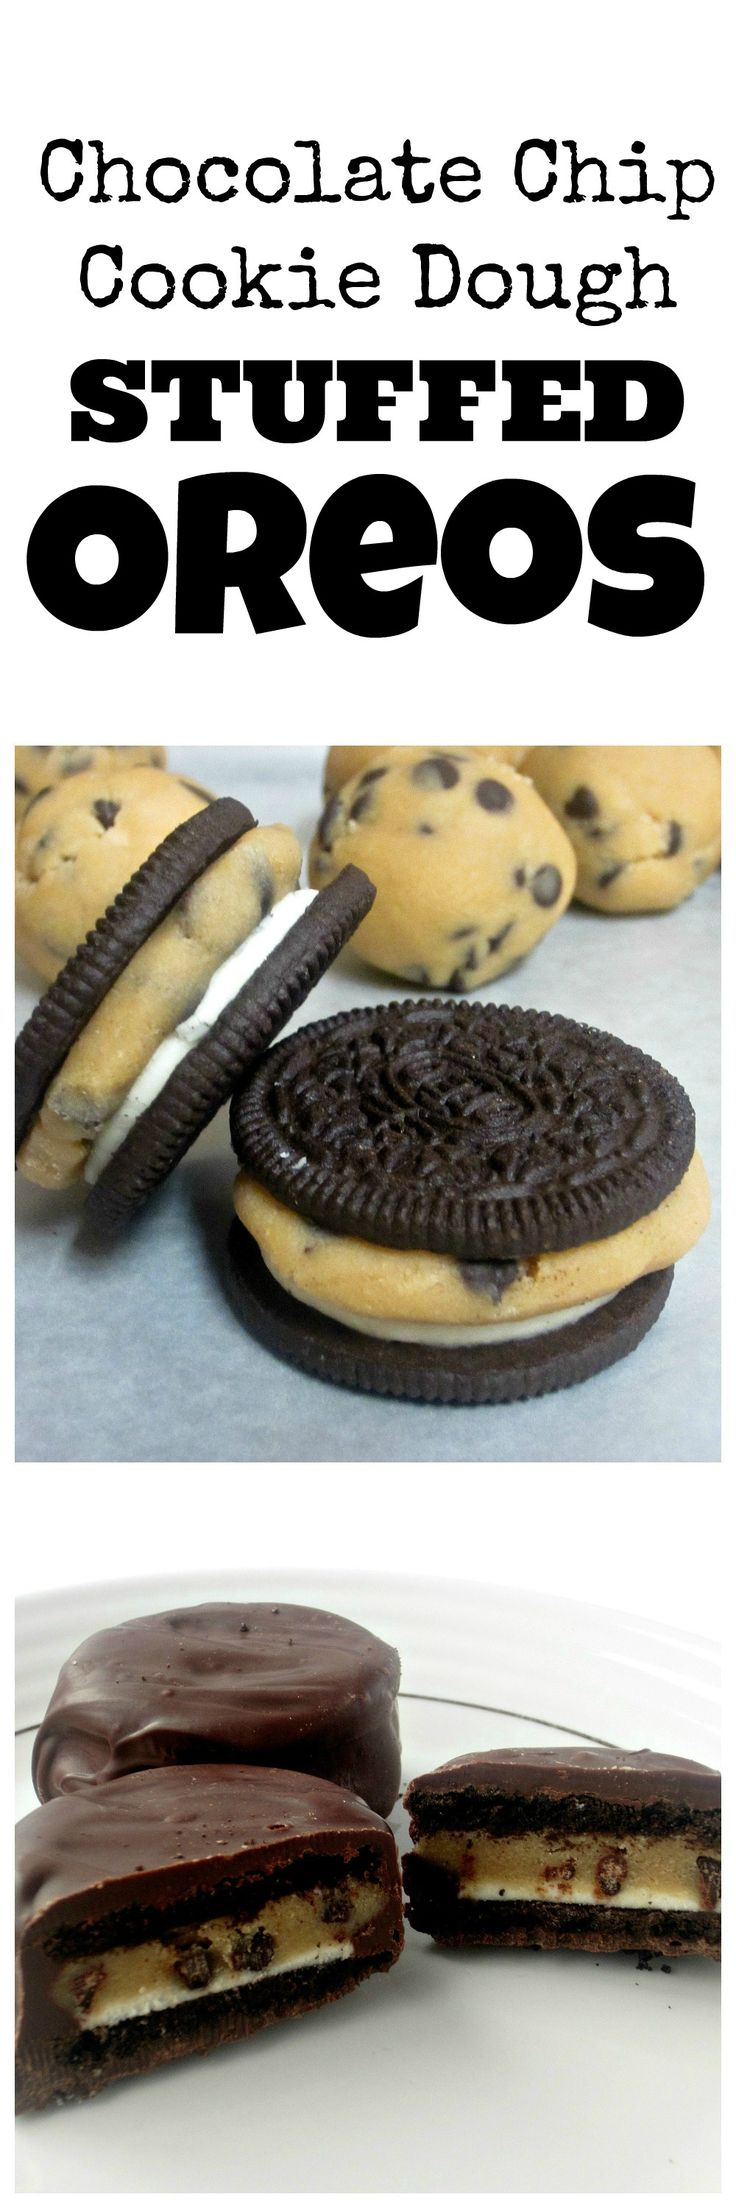 Chocolate Chip Cookie Dough Stuffed Oreos- My most pinned recipe ever!